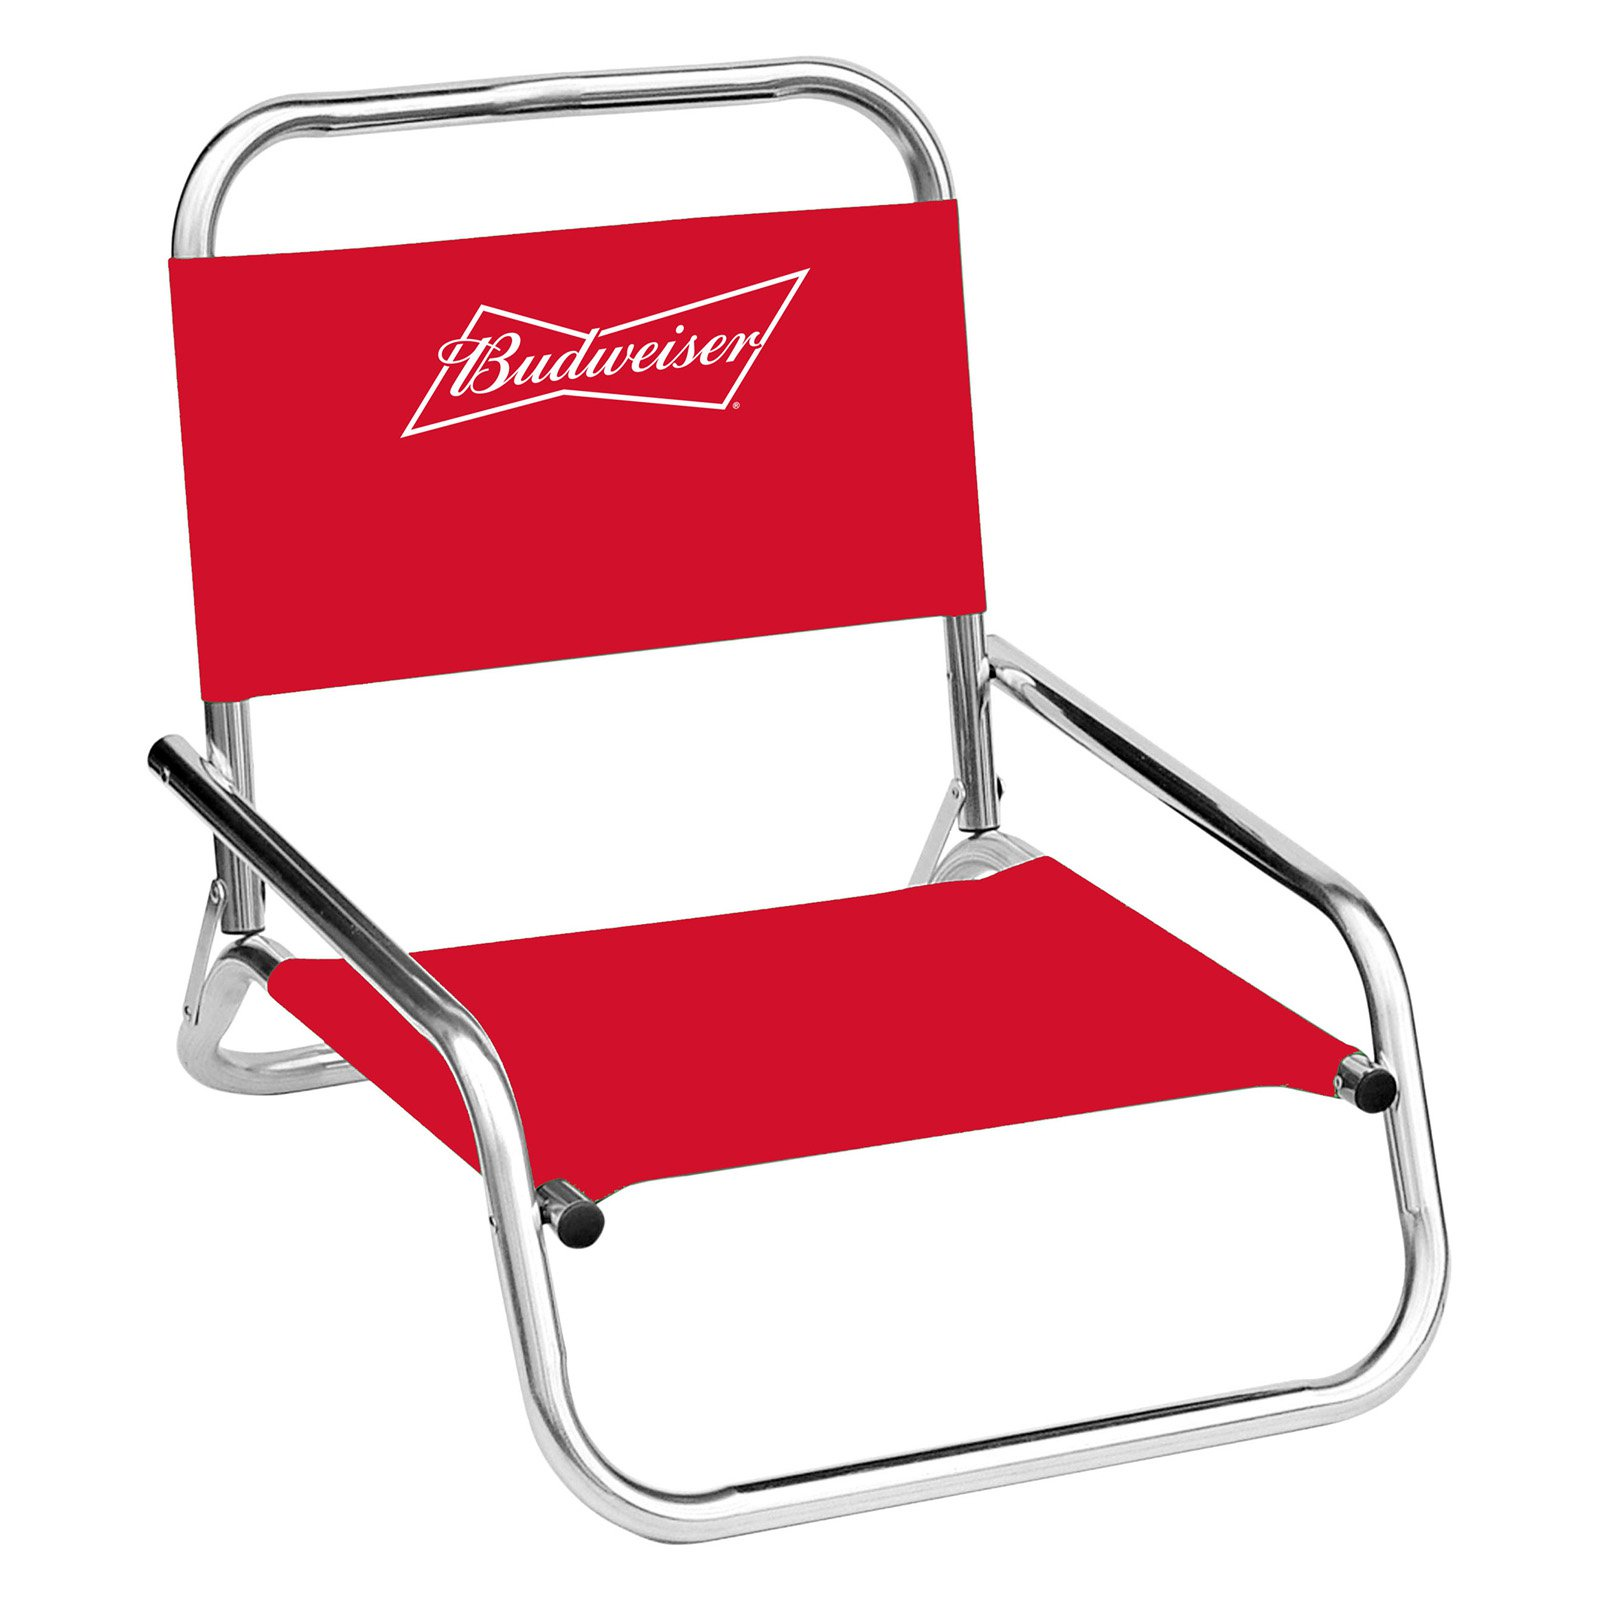 Budweiser one position folding beach chair